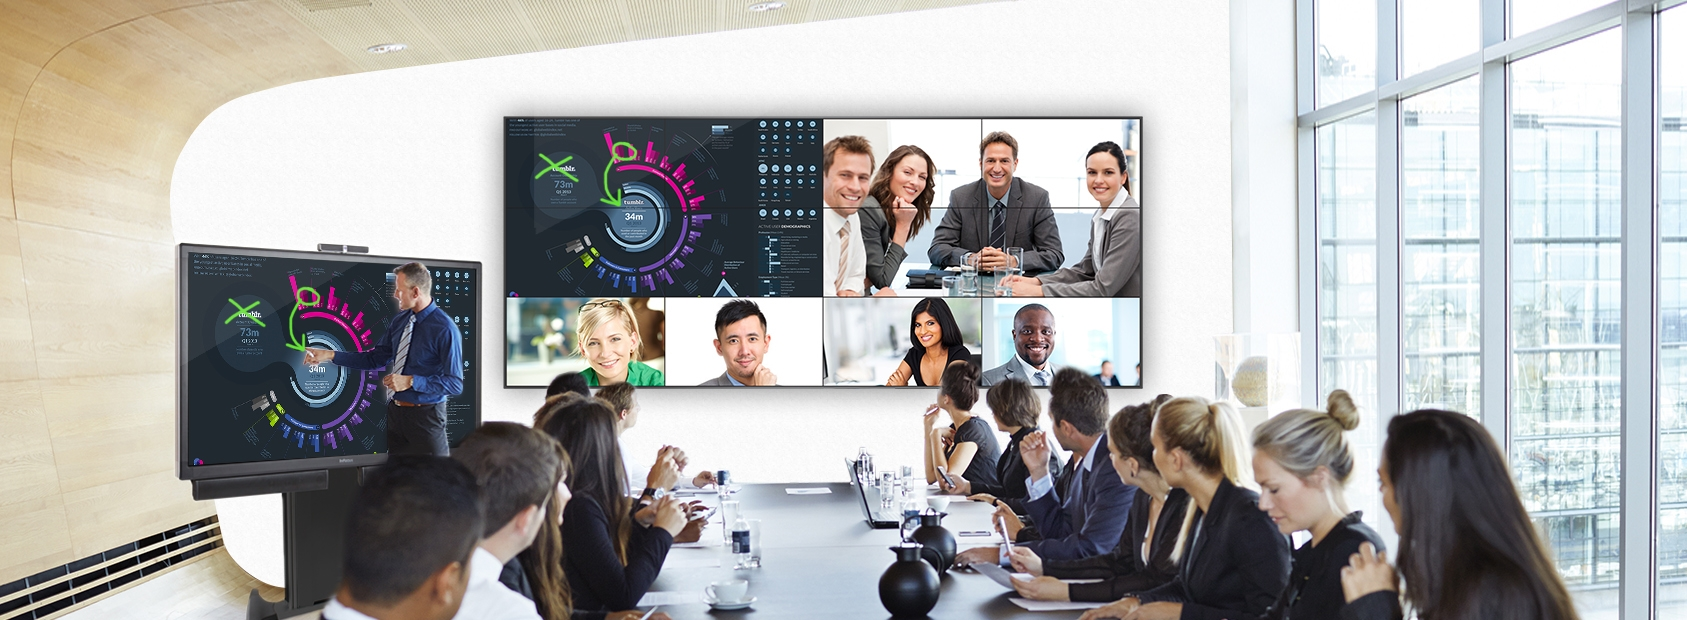 telanet-video-conferencing